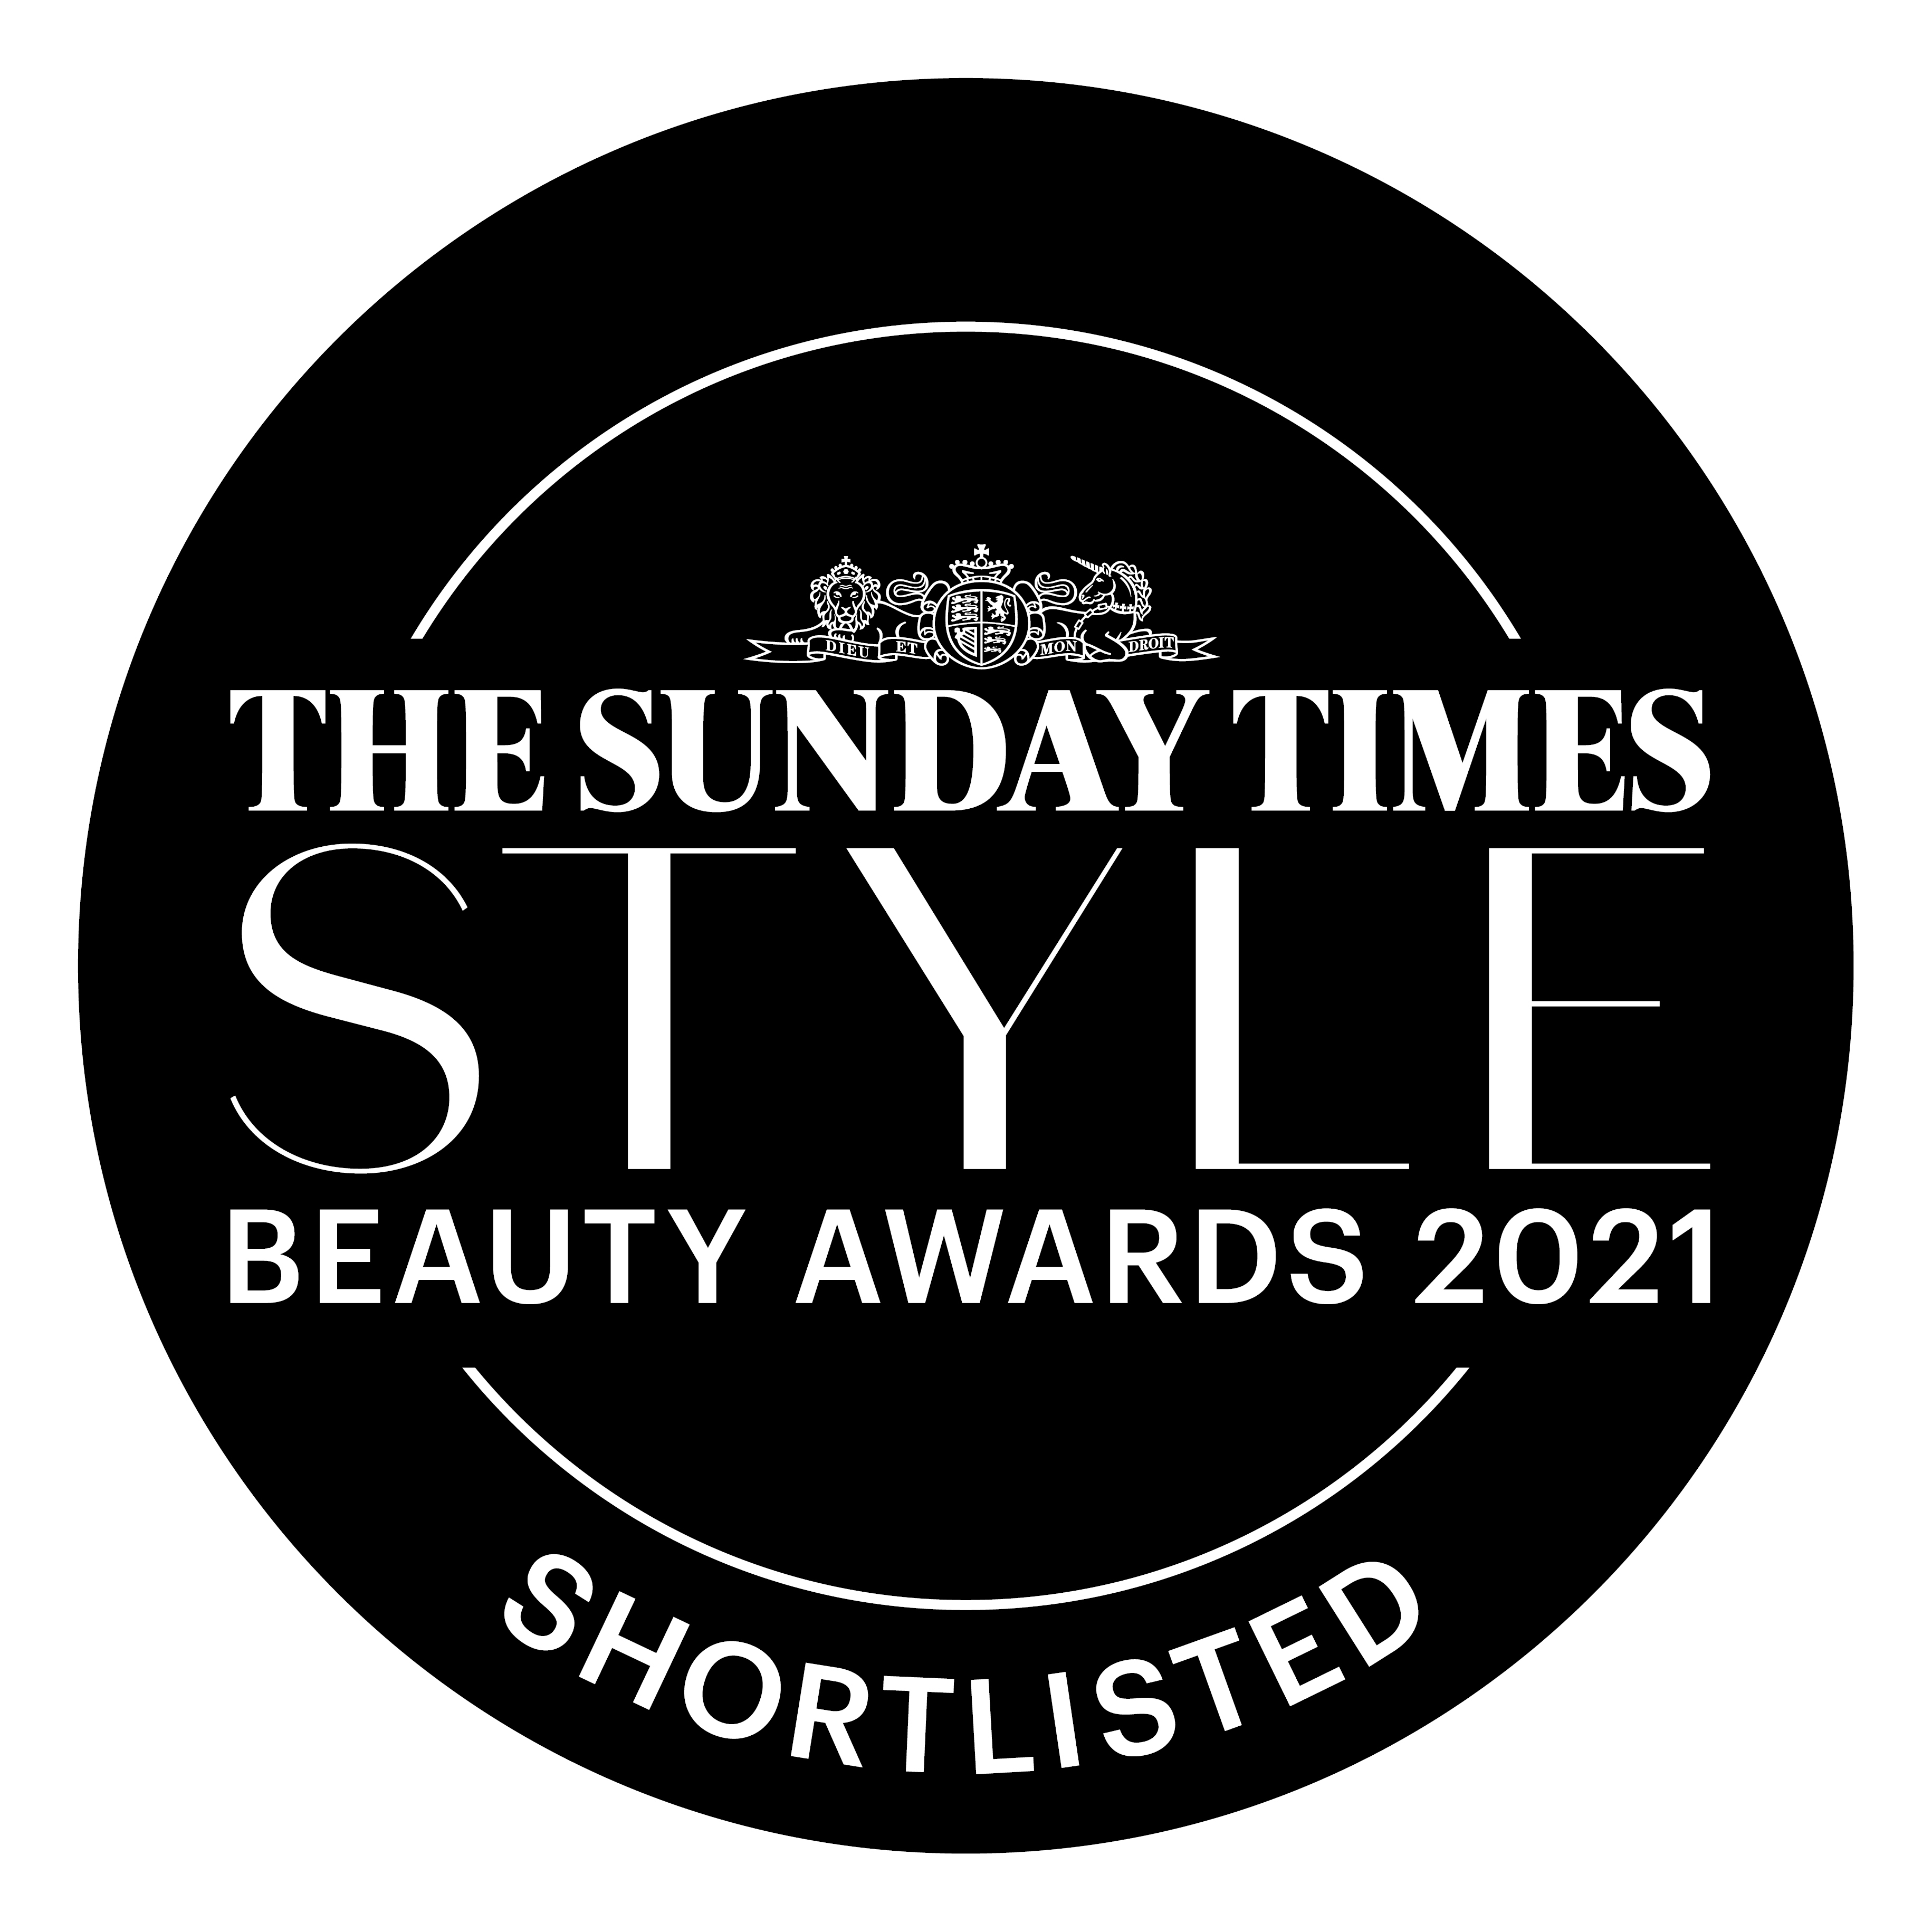 The Style Beauty Awards Shortlisted 2021